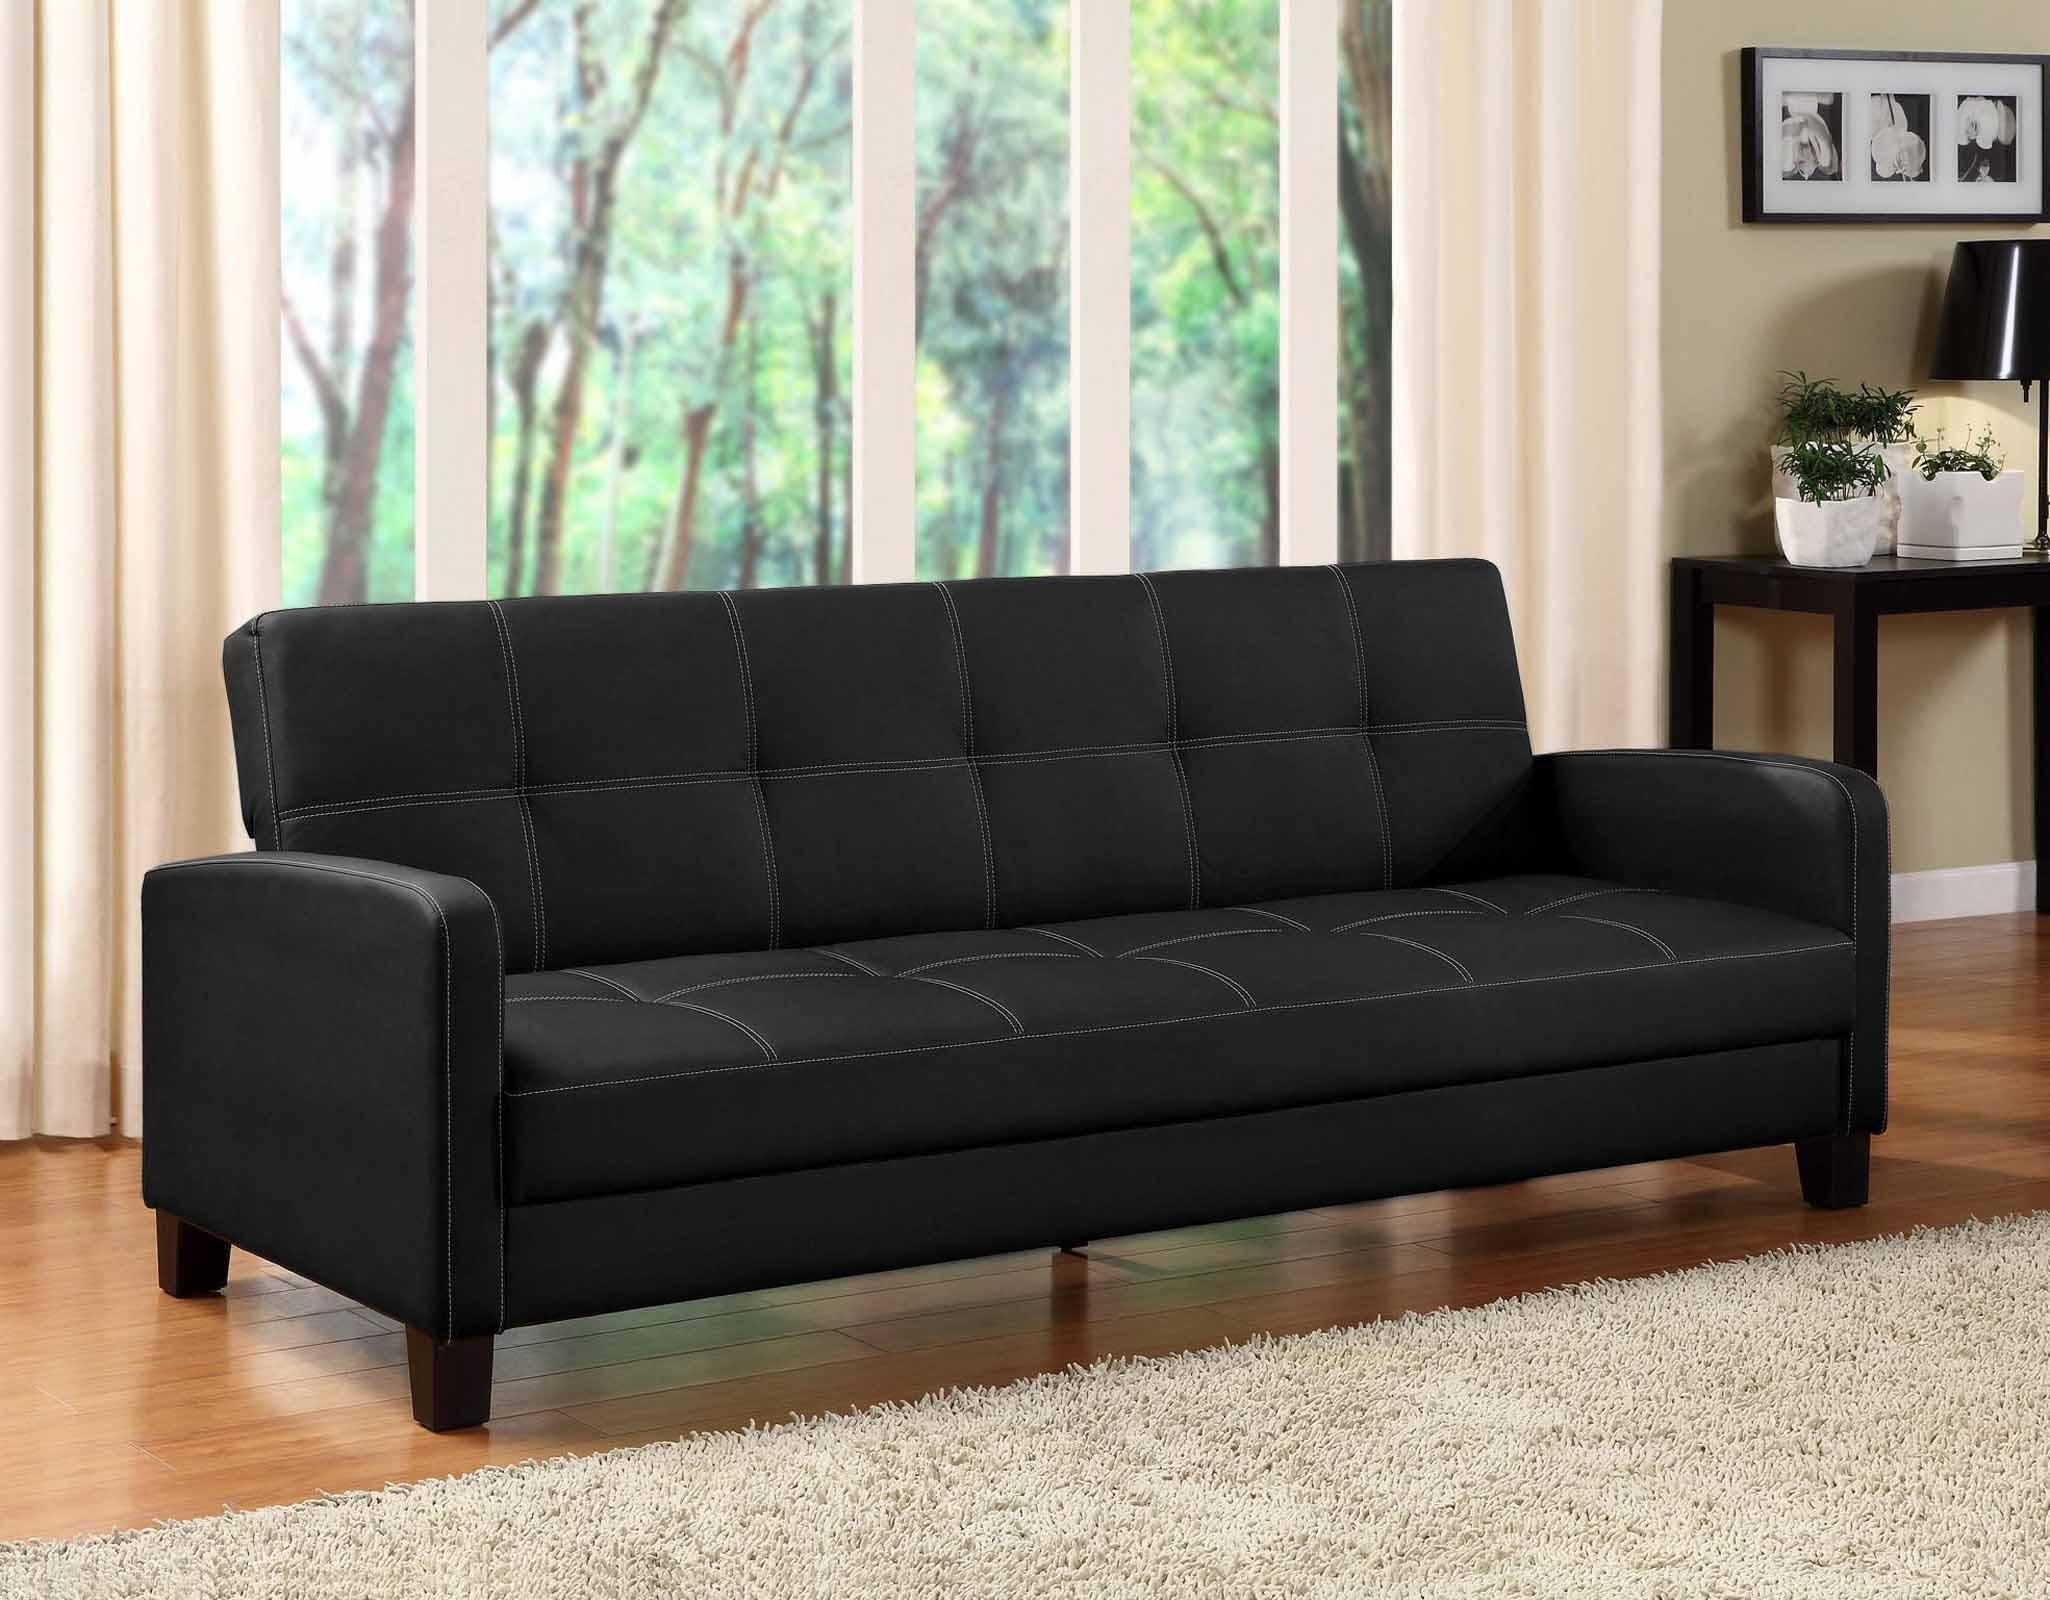 Small Futons For Sale | Roselawnlutheran In Kmart Futon Beds (Image 19 of 20)